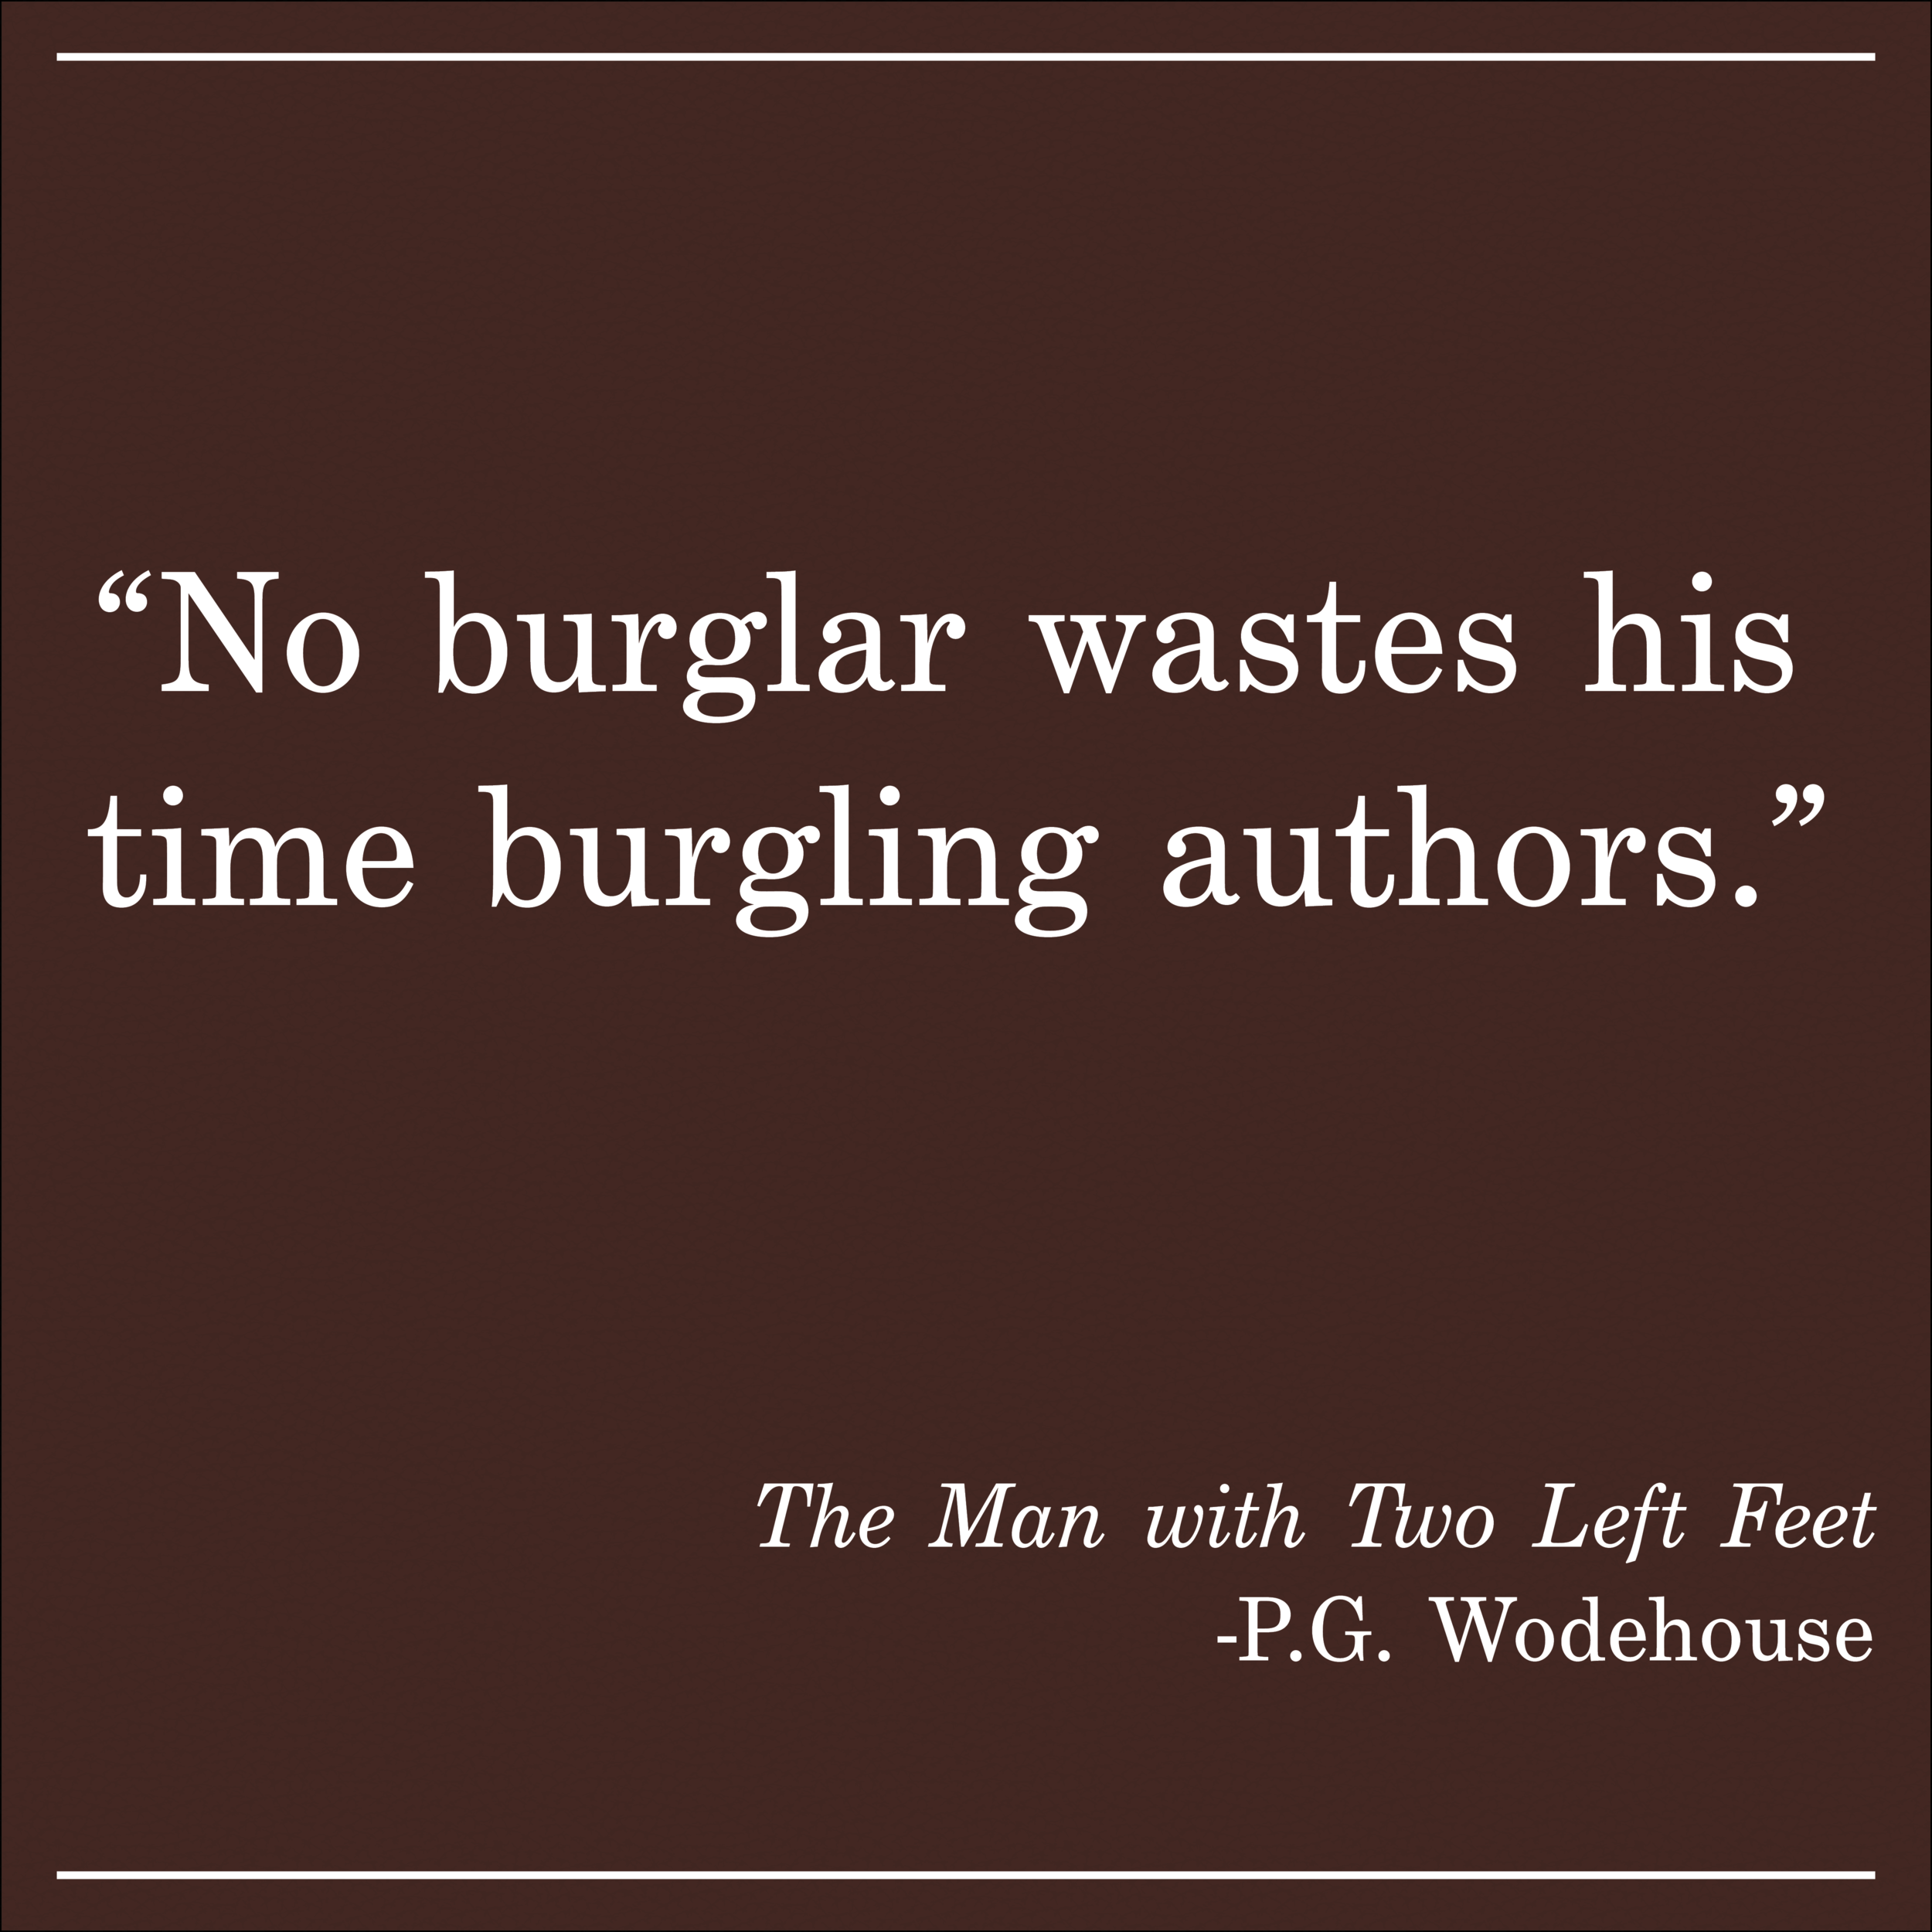 Daily Quote The Man with Two Left Feet by PG Wodehouse